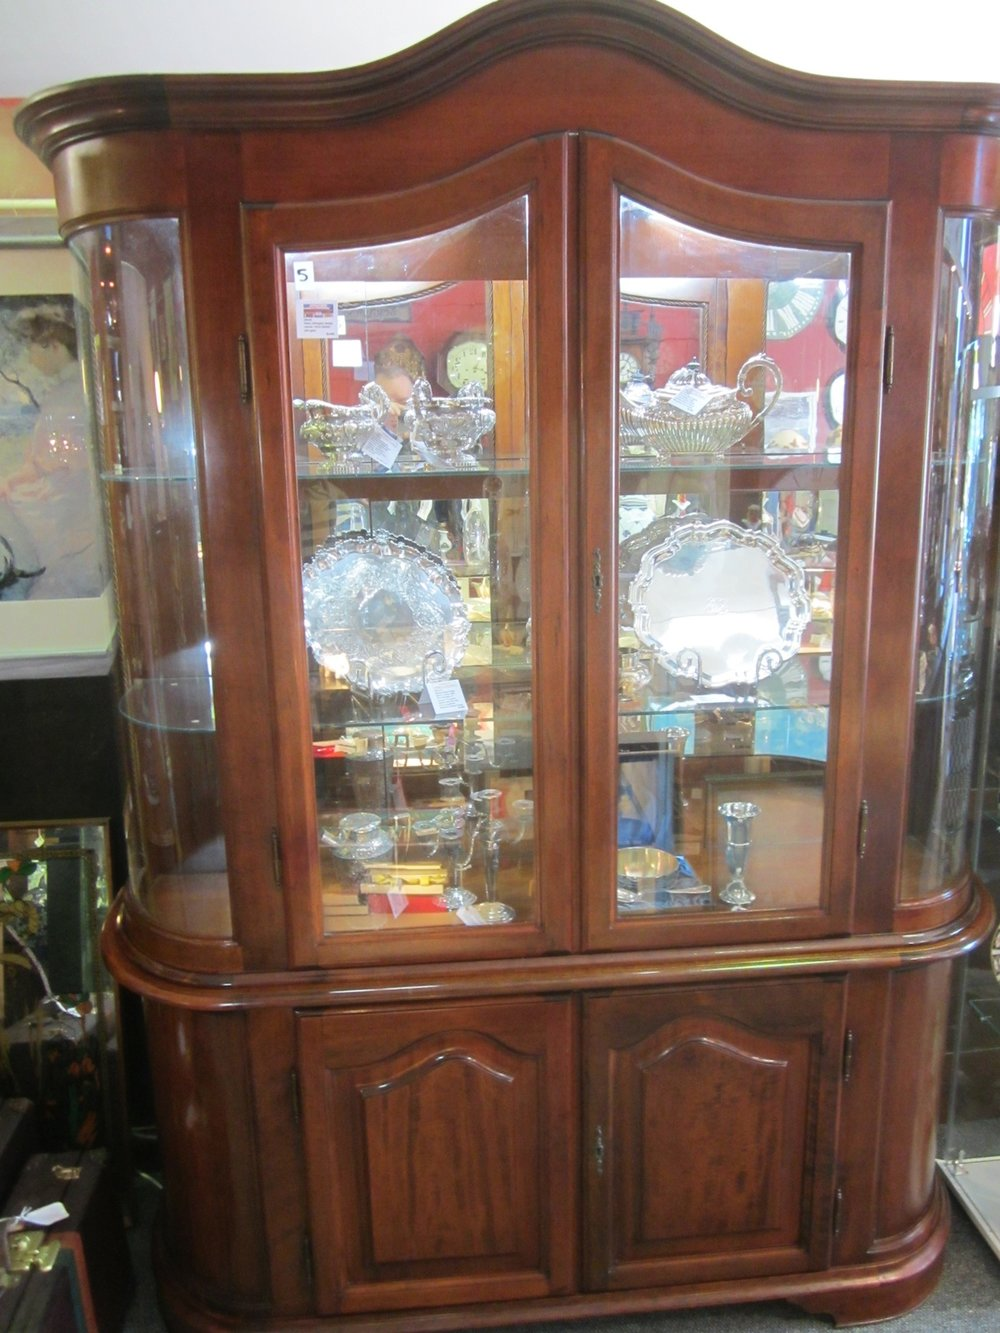 GG6546 Italian mahogany display cabinet, with lights, lockable with keys. 148 x 46 x 214cm high